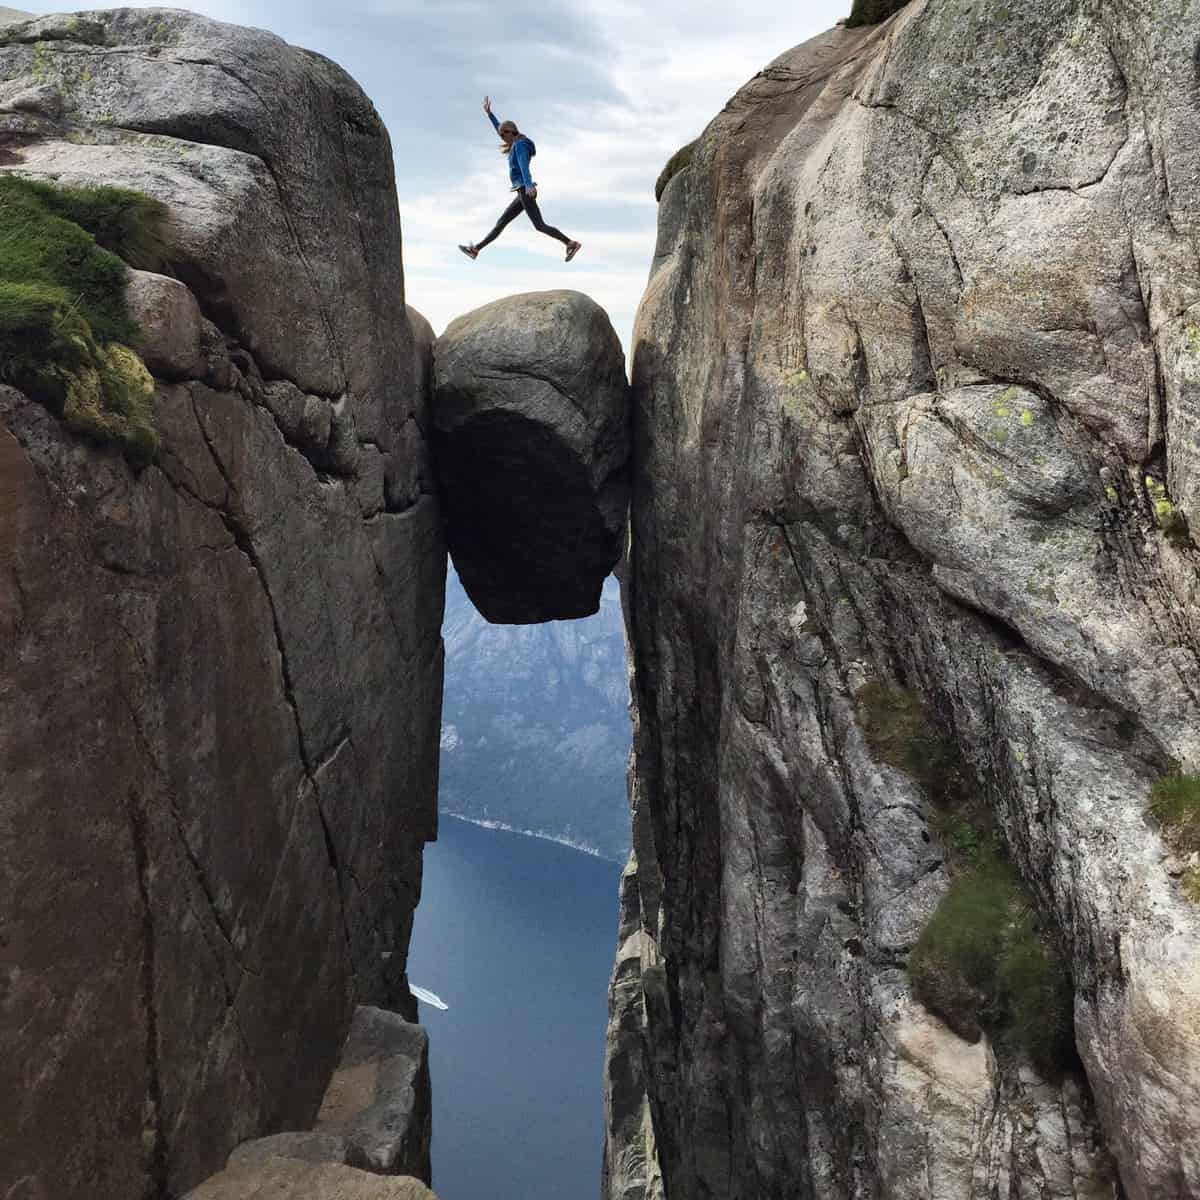 The hike to Kjerag climbs 570 meters and takes around 5 hours.